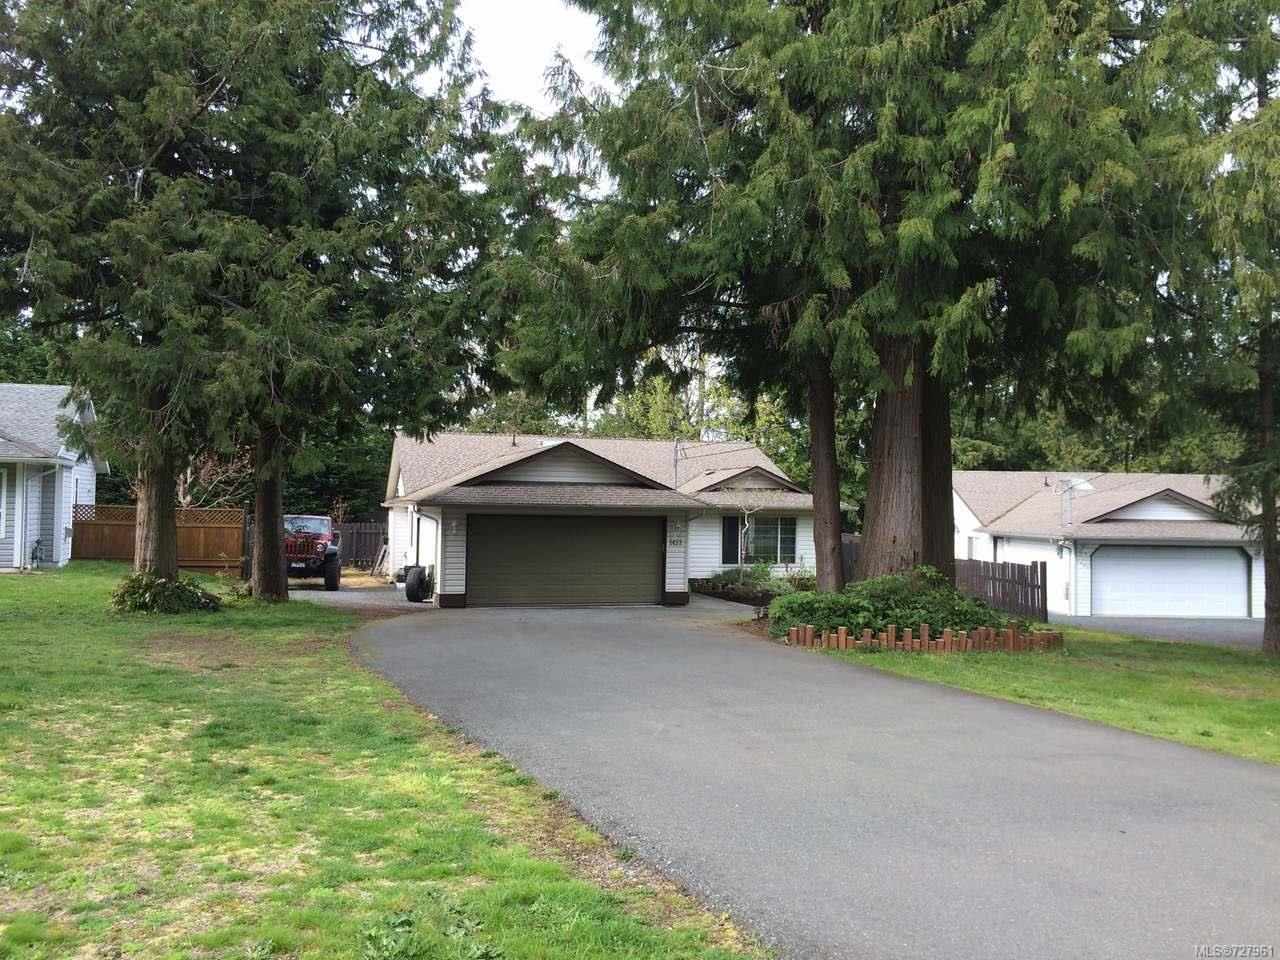 Photo 18: Photos: 1433 SUNRISE DRIVE in FRENCH CREEK: PQ French Creek House for sale (Parksville/Qualicum)  : MLS®# 727961